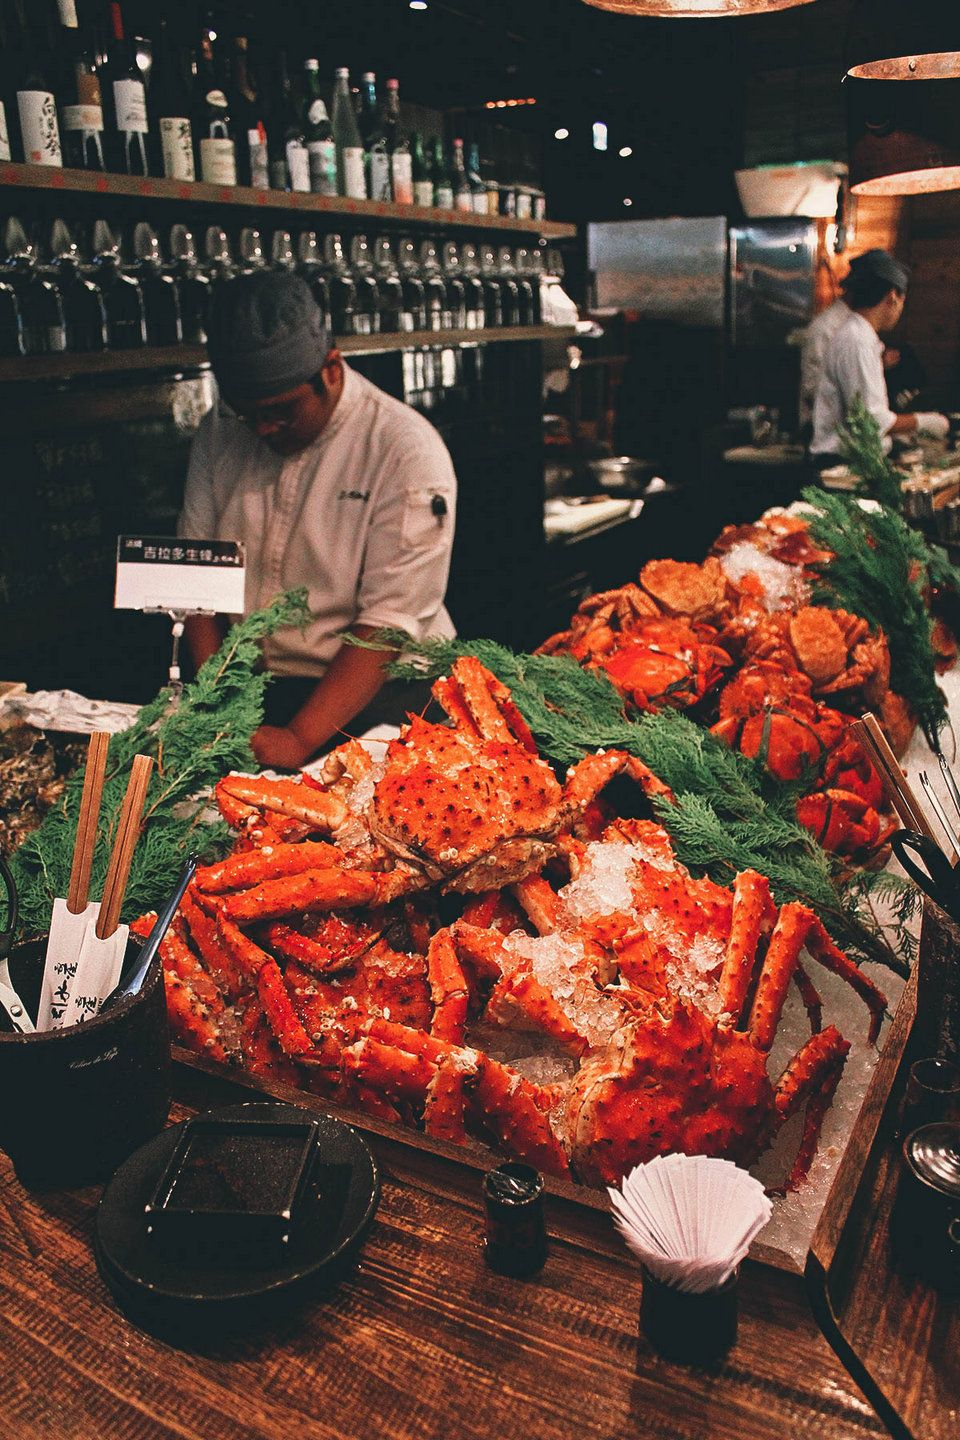 Explore Taipei Fish Market Review Seafood Experience At Taiwan S Most Famous Fish Market Living Nomads Travel Tips Guides News Information Seafood Market Fresh Food Market Fresh Seafood Market